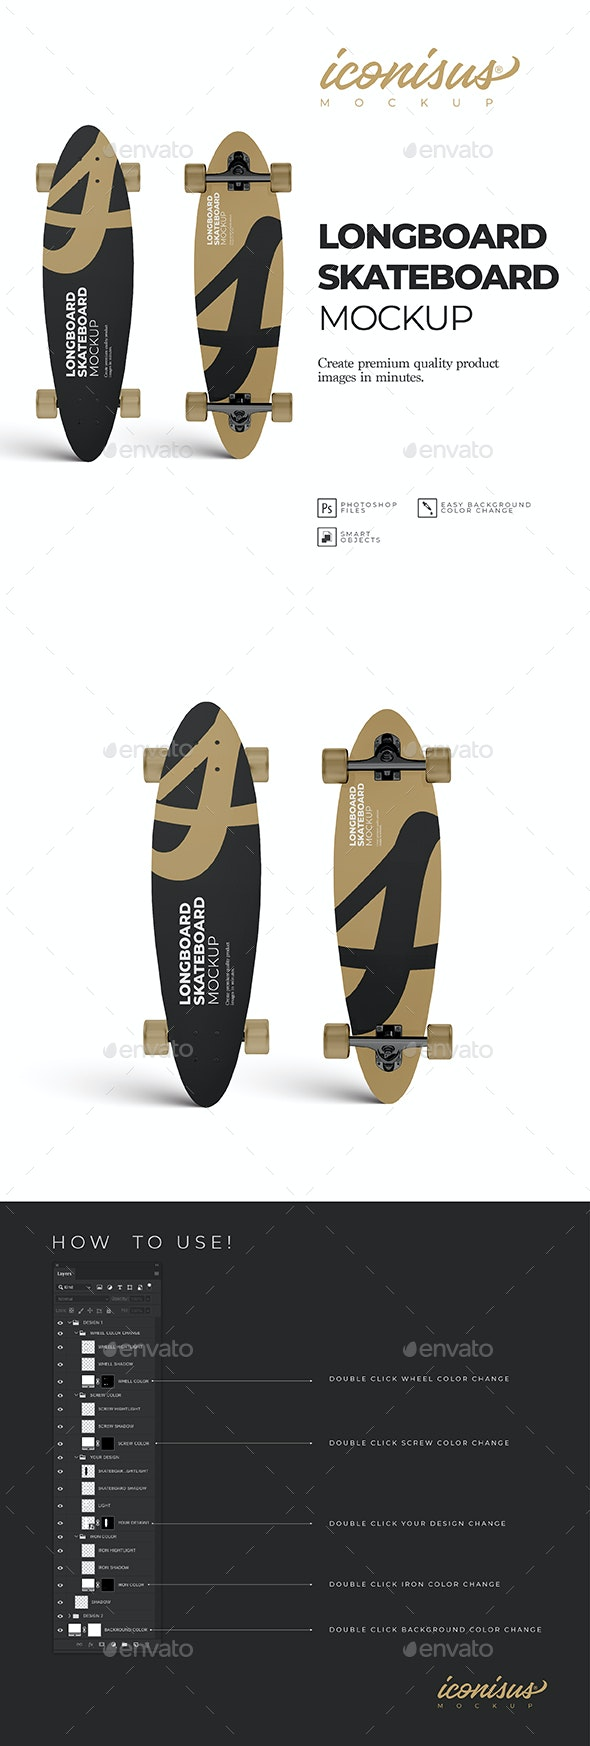 Longboard Skateboard Mockup Template - Product Mock-Ups Graphics